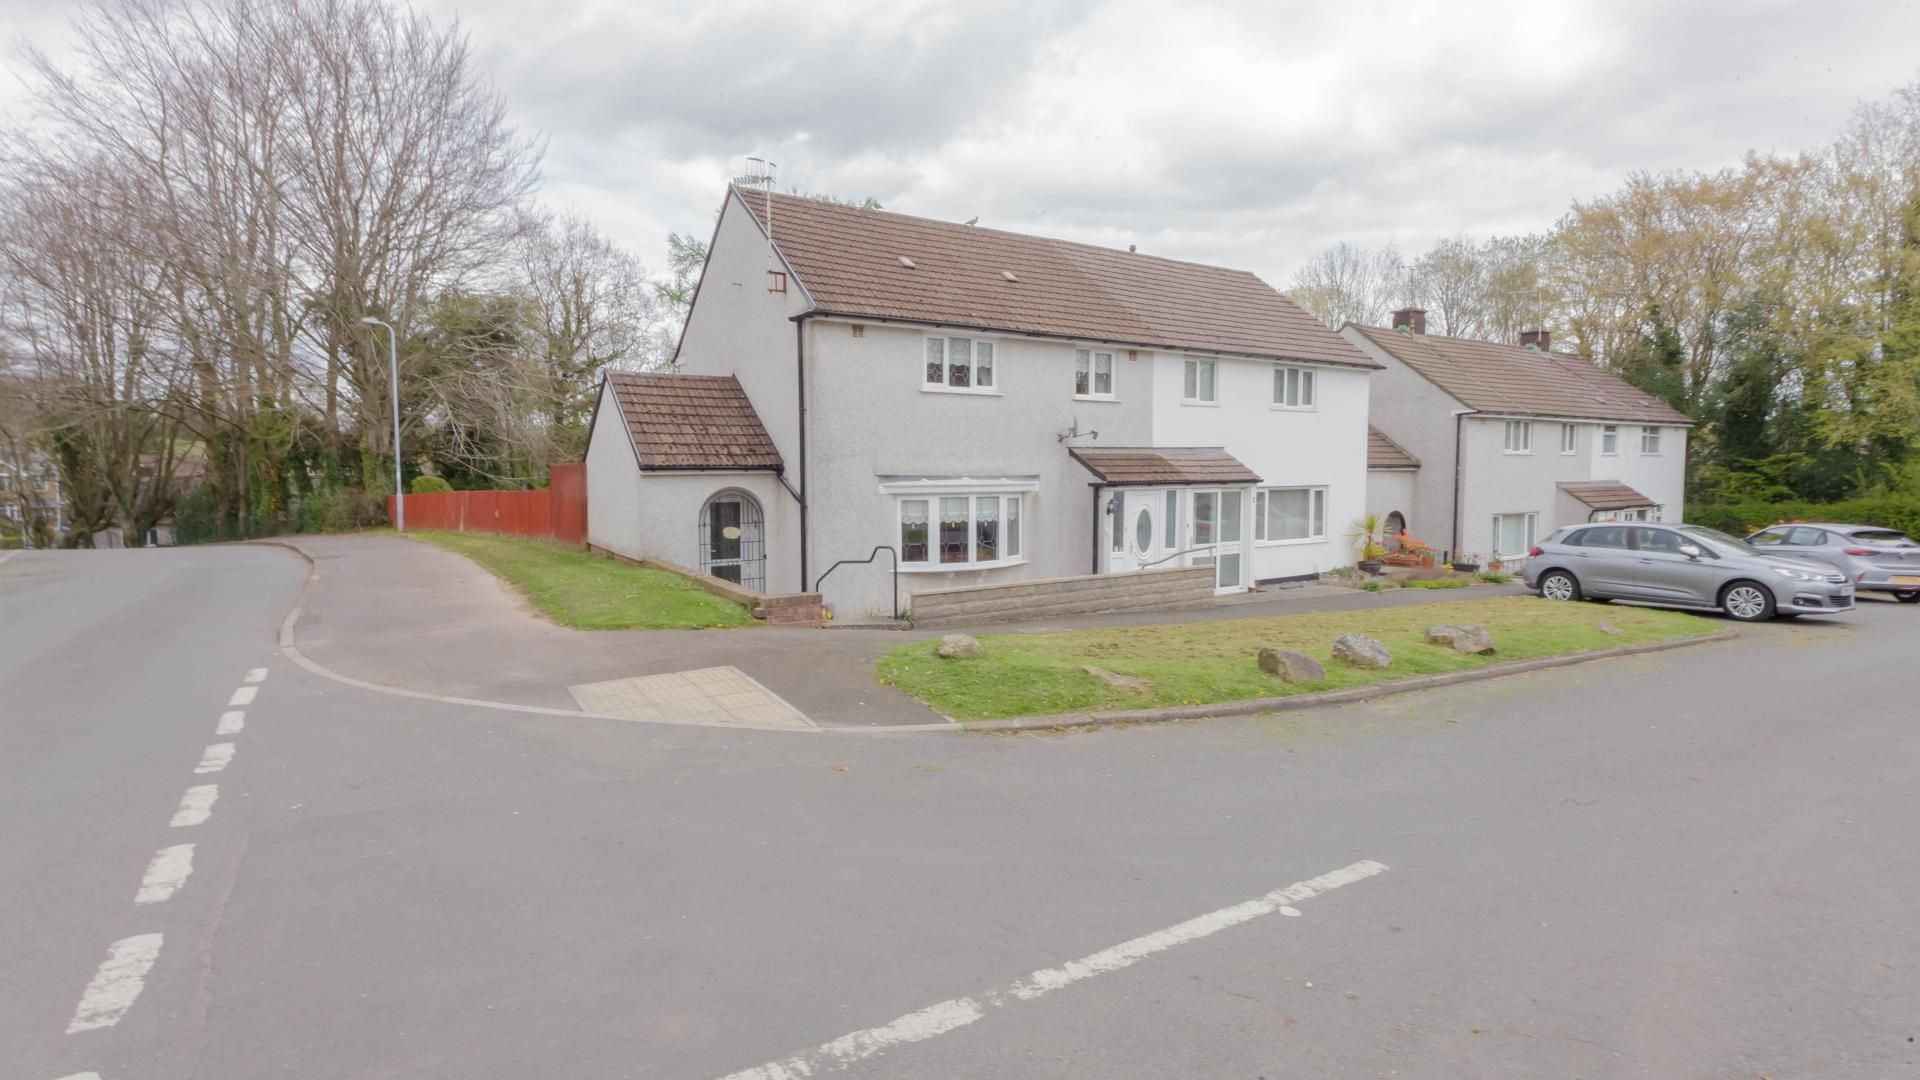 3 bed  for sale in Tynewydd North Close, NP44